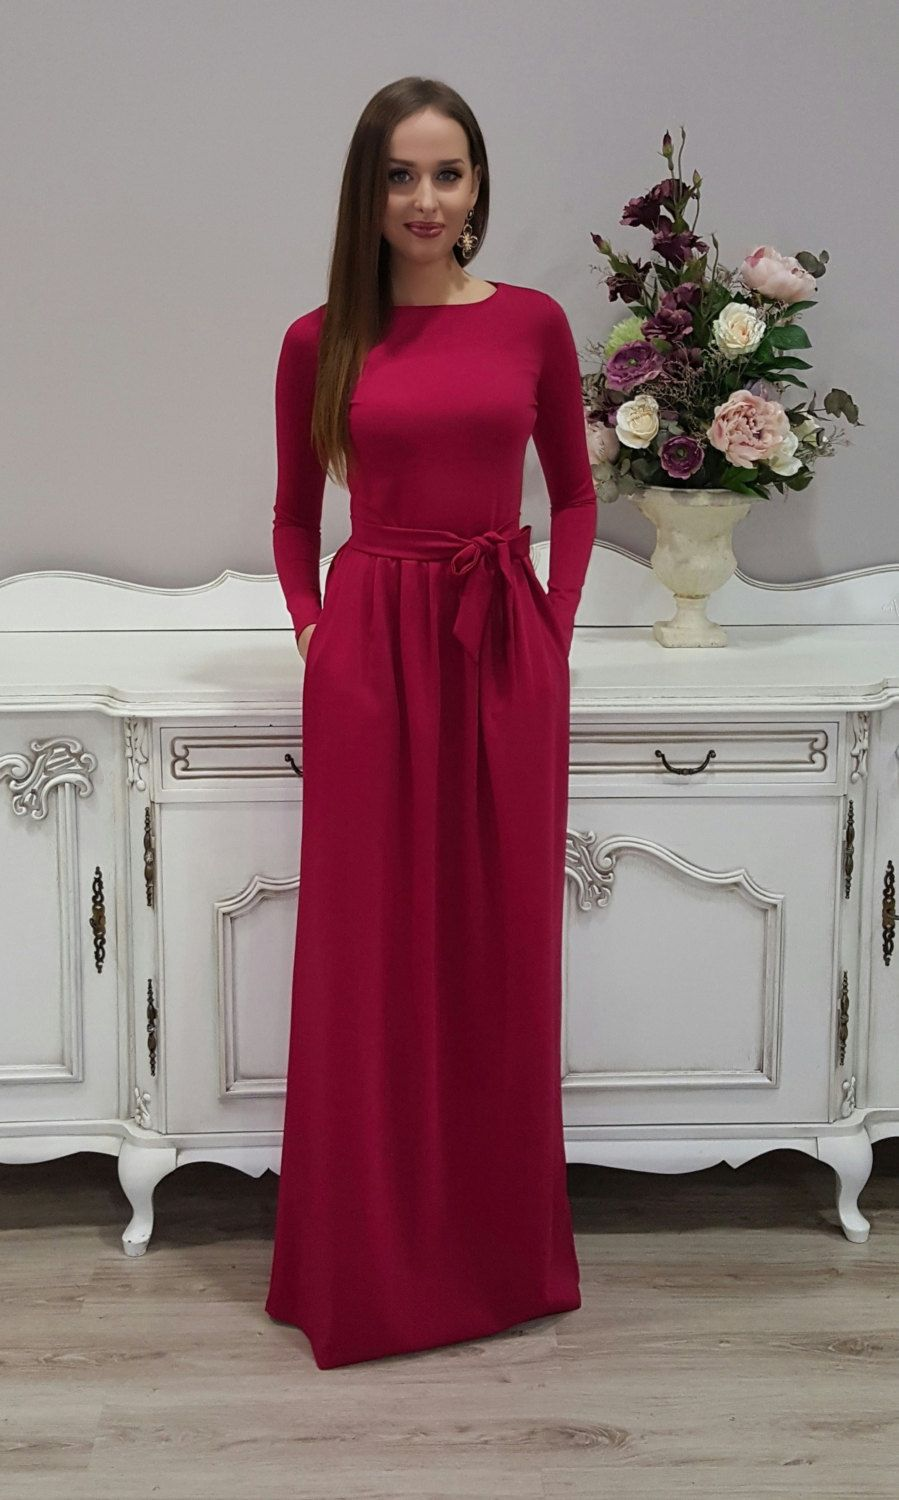 c4248f3f52 A dress crimson color with raspberry undertone. ❖ Waist with elastic,  stretch it according to your waist size. ❖ Fabric belt- sash. ❖ If you wish  V neck, ...